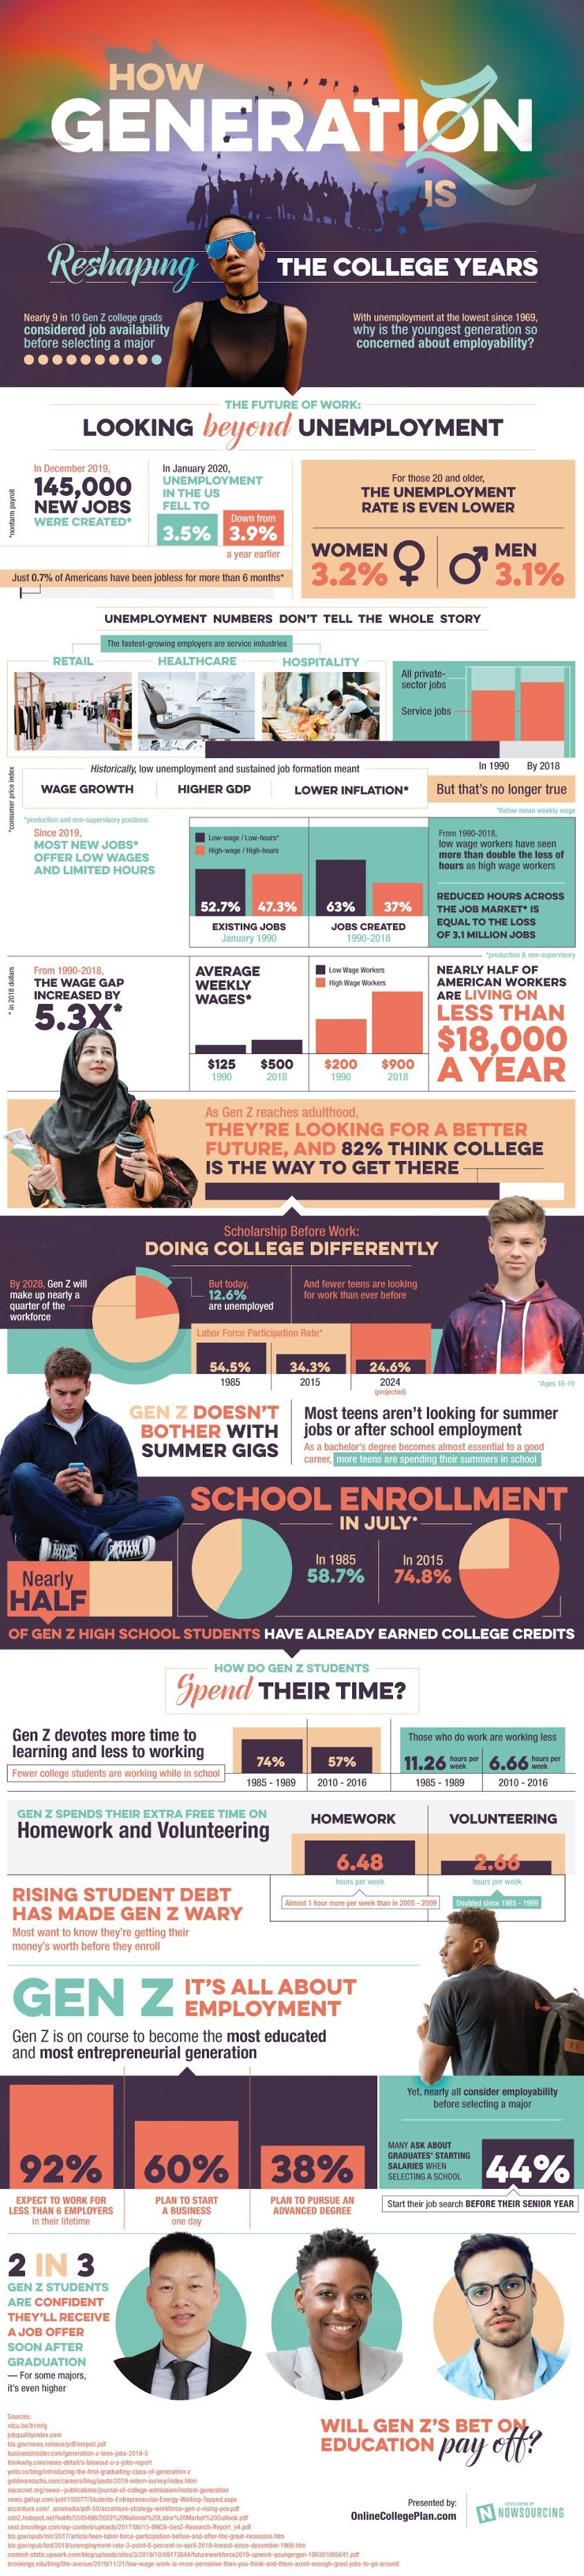 How Is GenZ Doing College Differently? #infographic